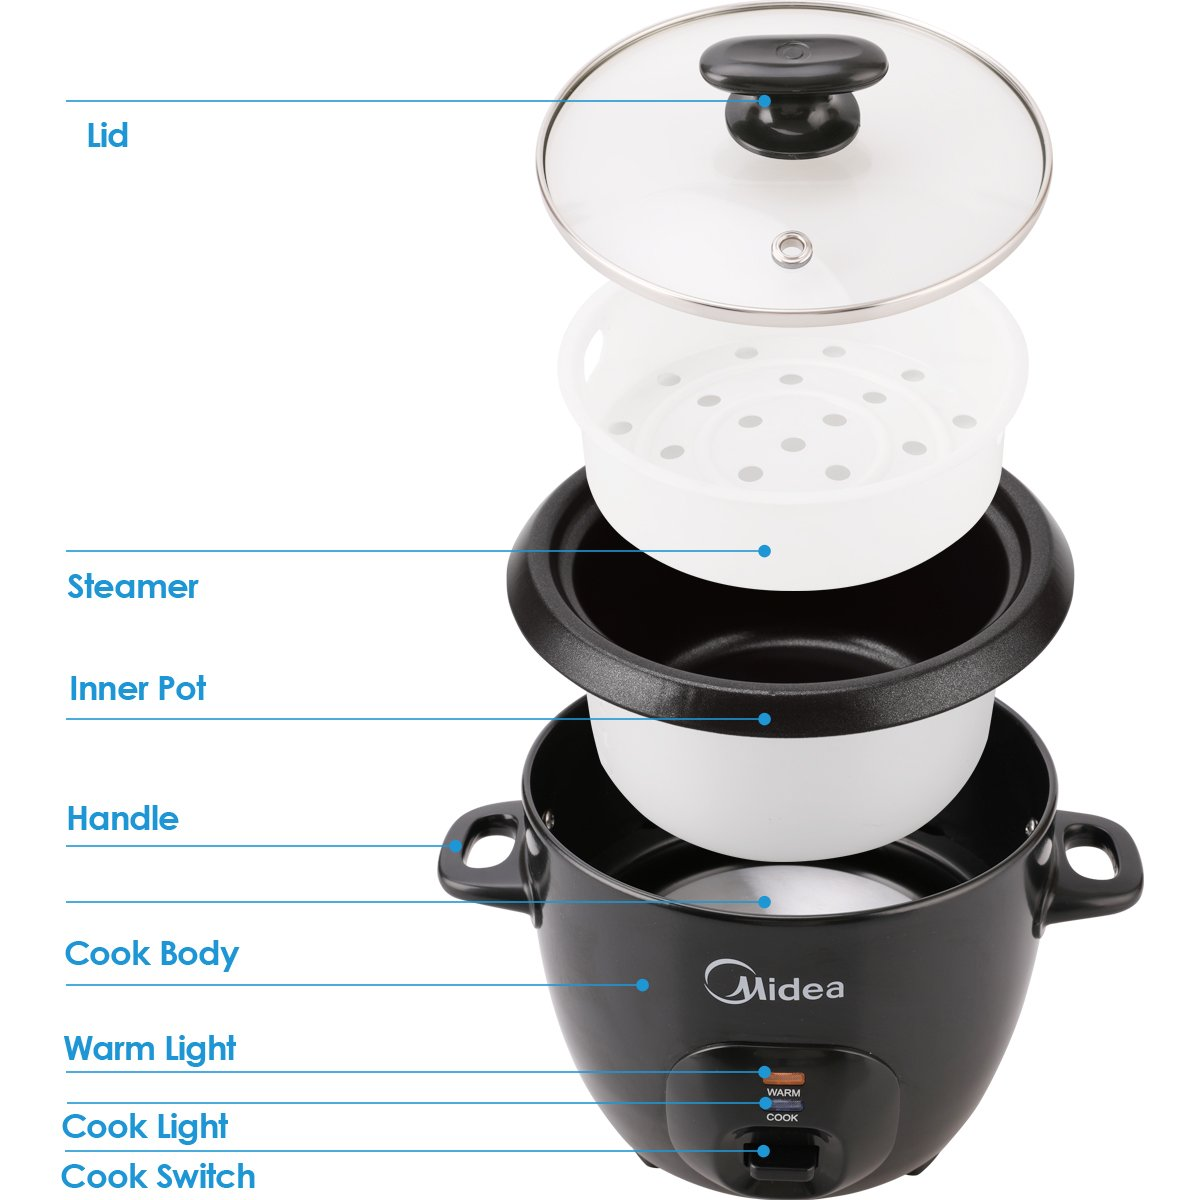 Midea 3-Cup (Cooked),1.5 Cup (Uncooked) Small Rice Cooker with Food Steamer (MRC173-B), Black by MIDEA (Image #6)